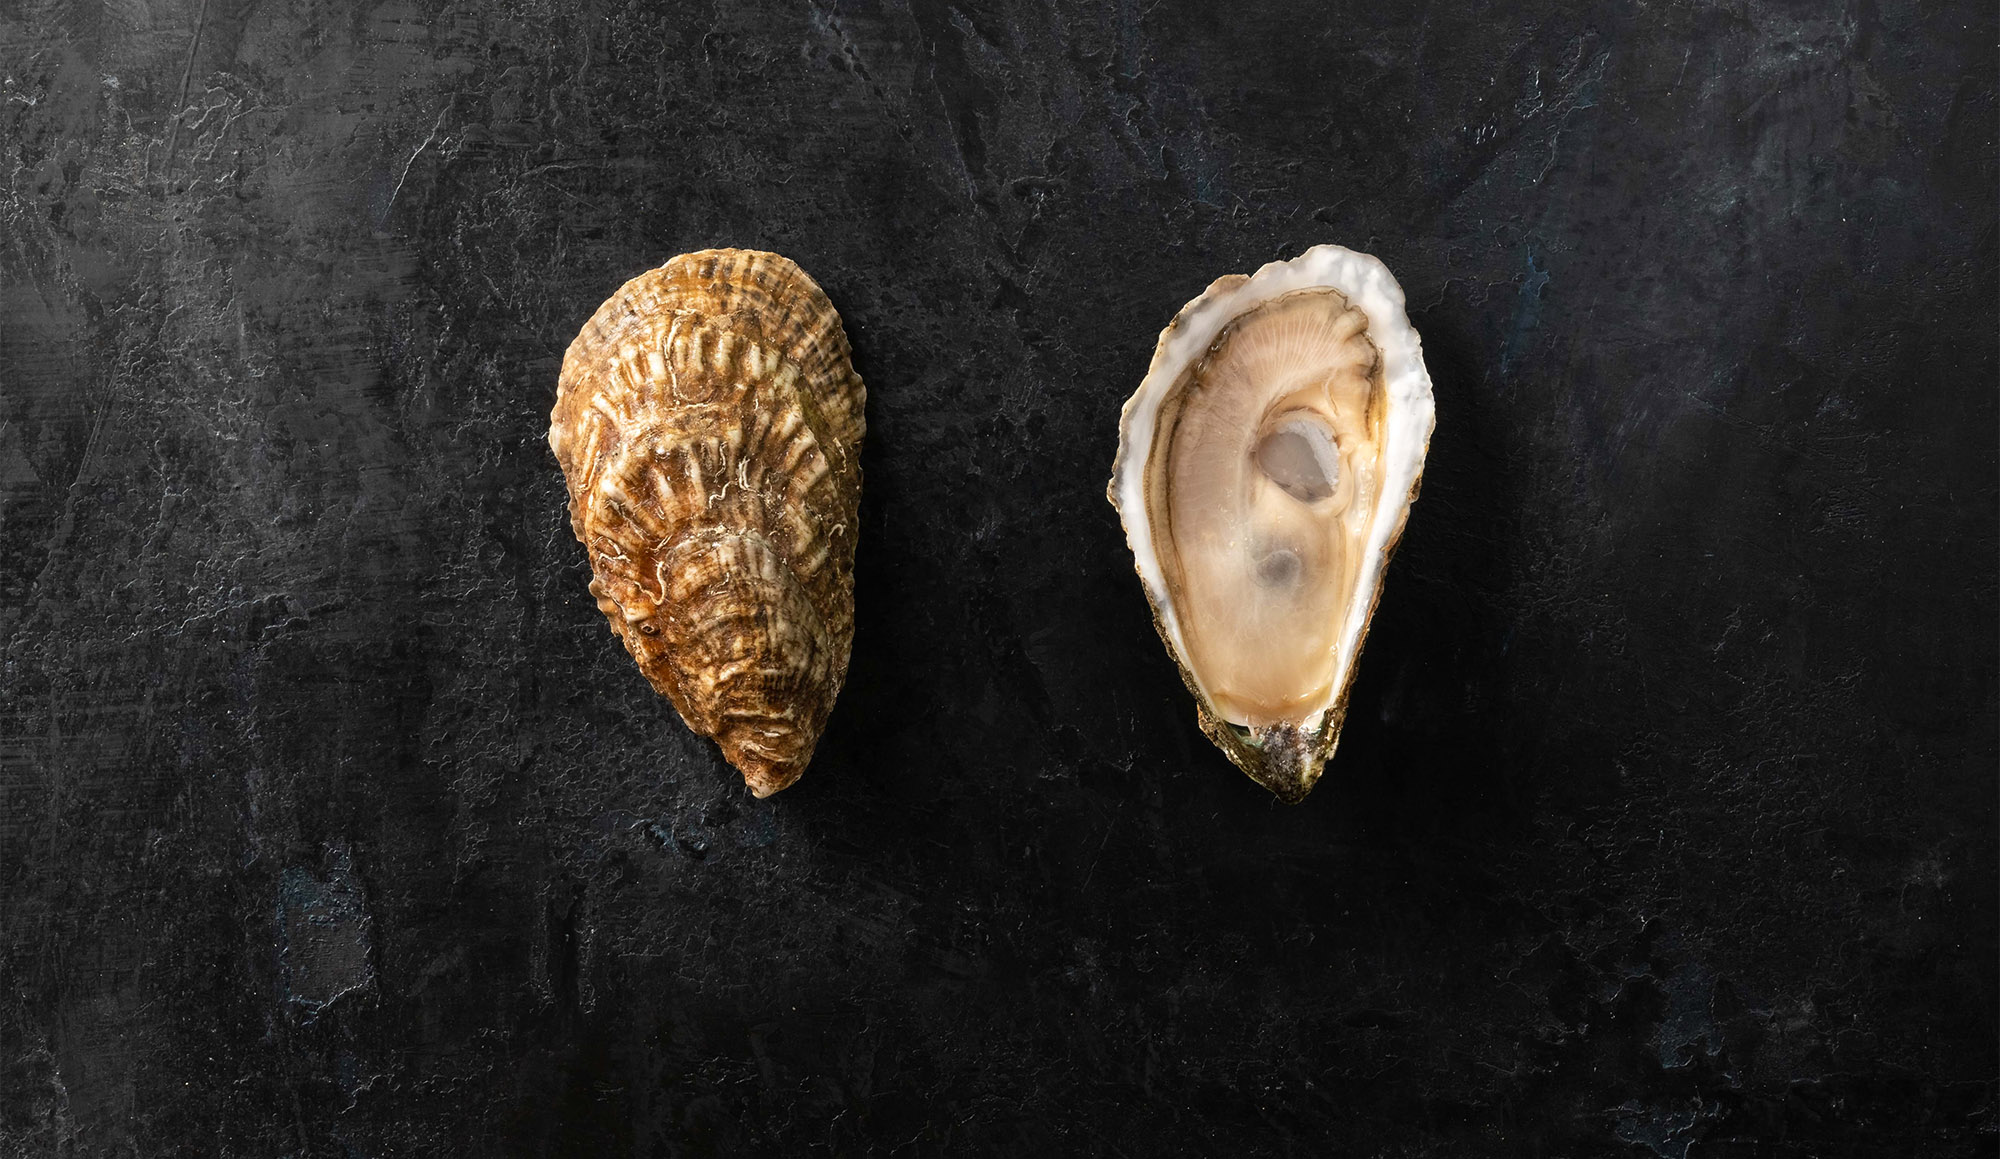 Wellfleet represents one of the more famous oyster provenances in the world, and they've been harvesting oysters here since the early 1600's.